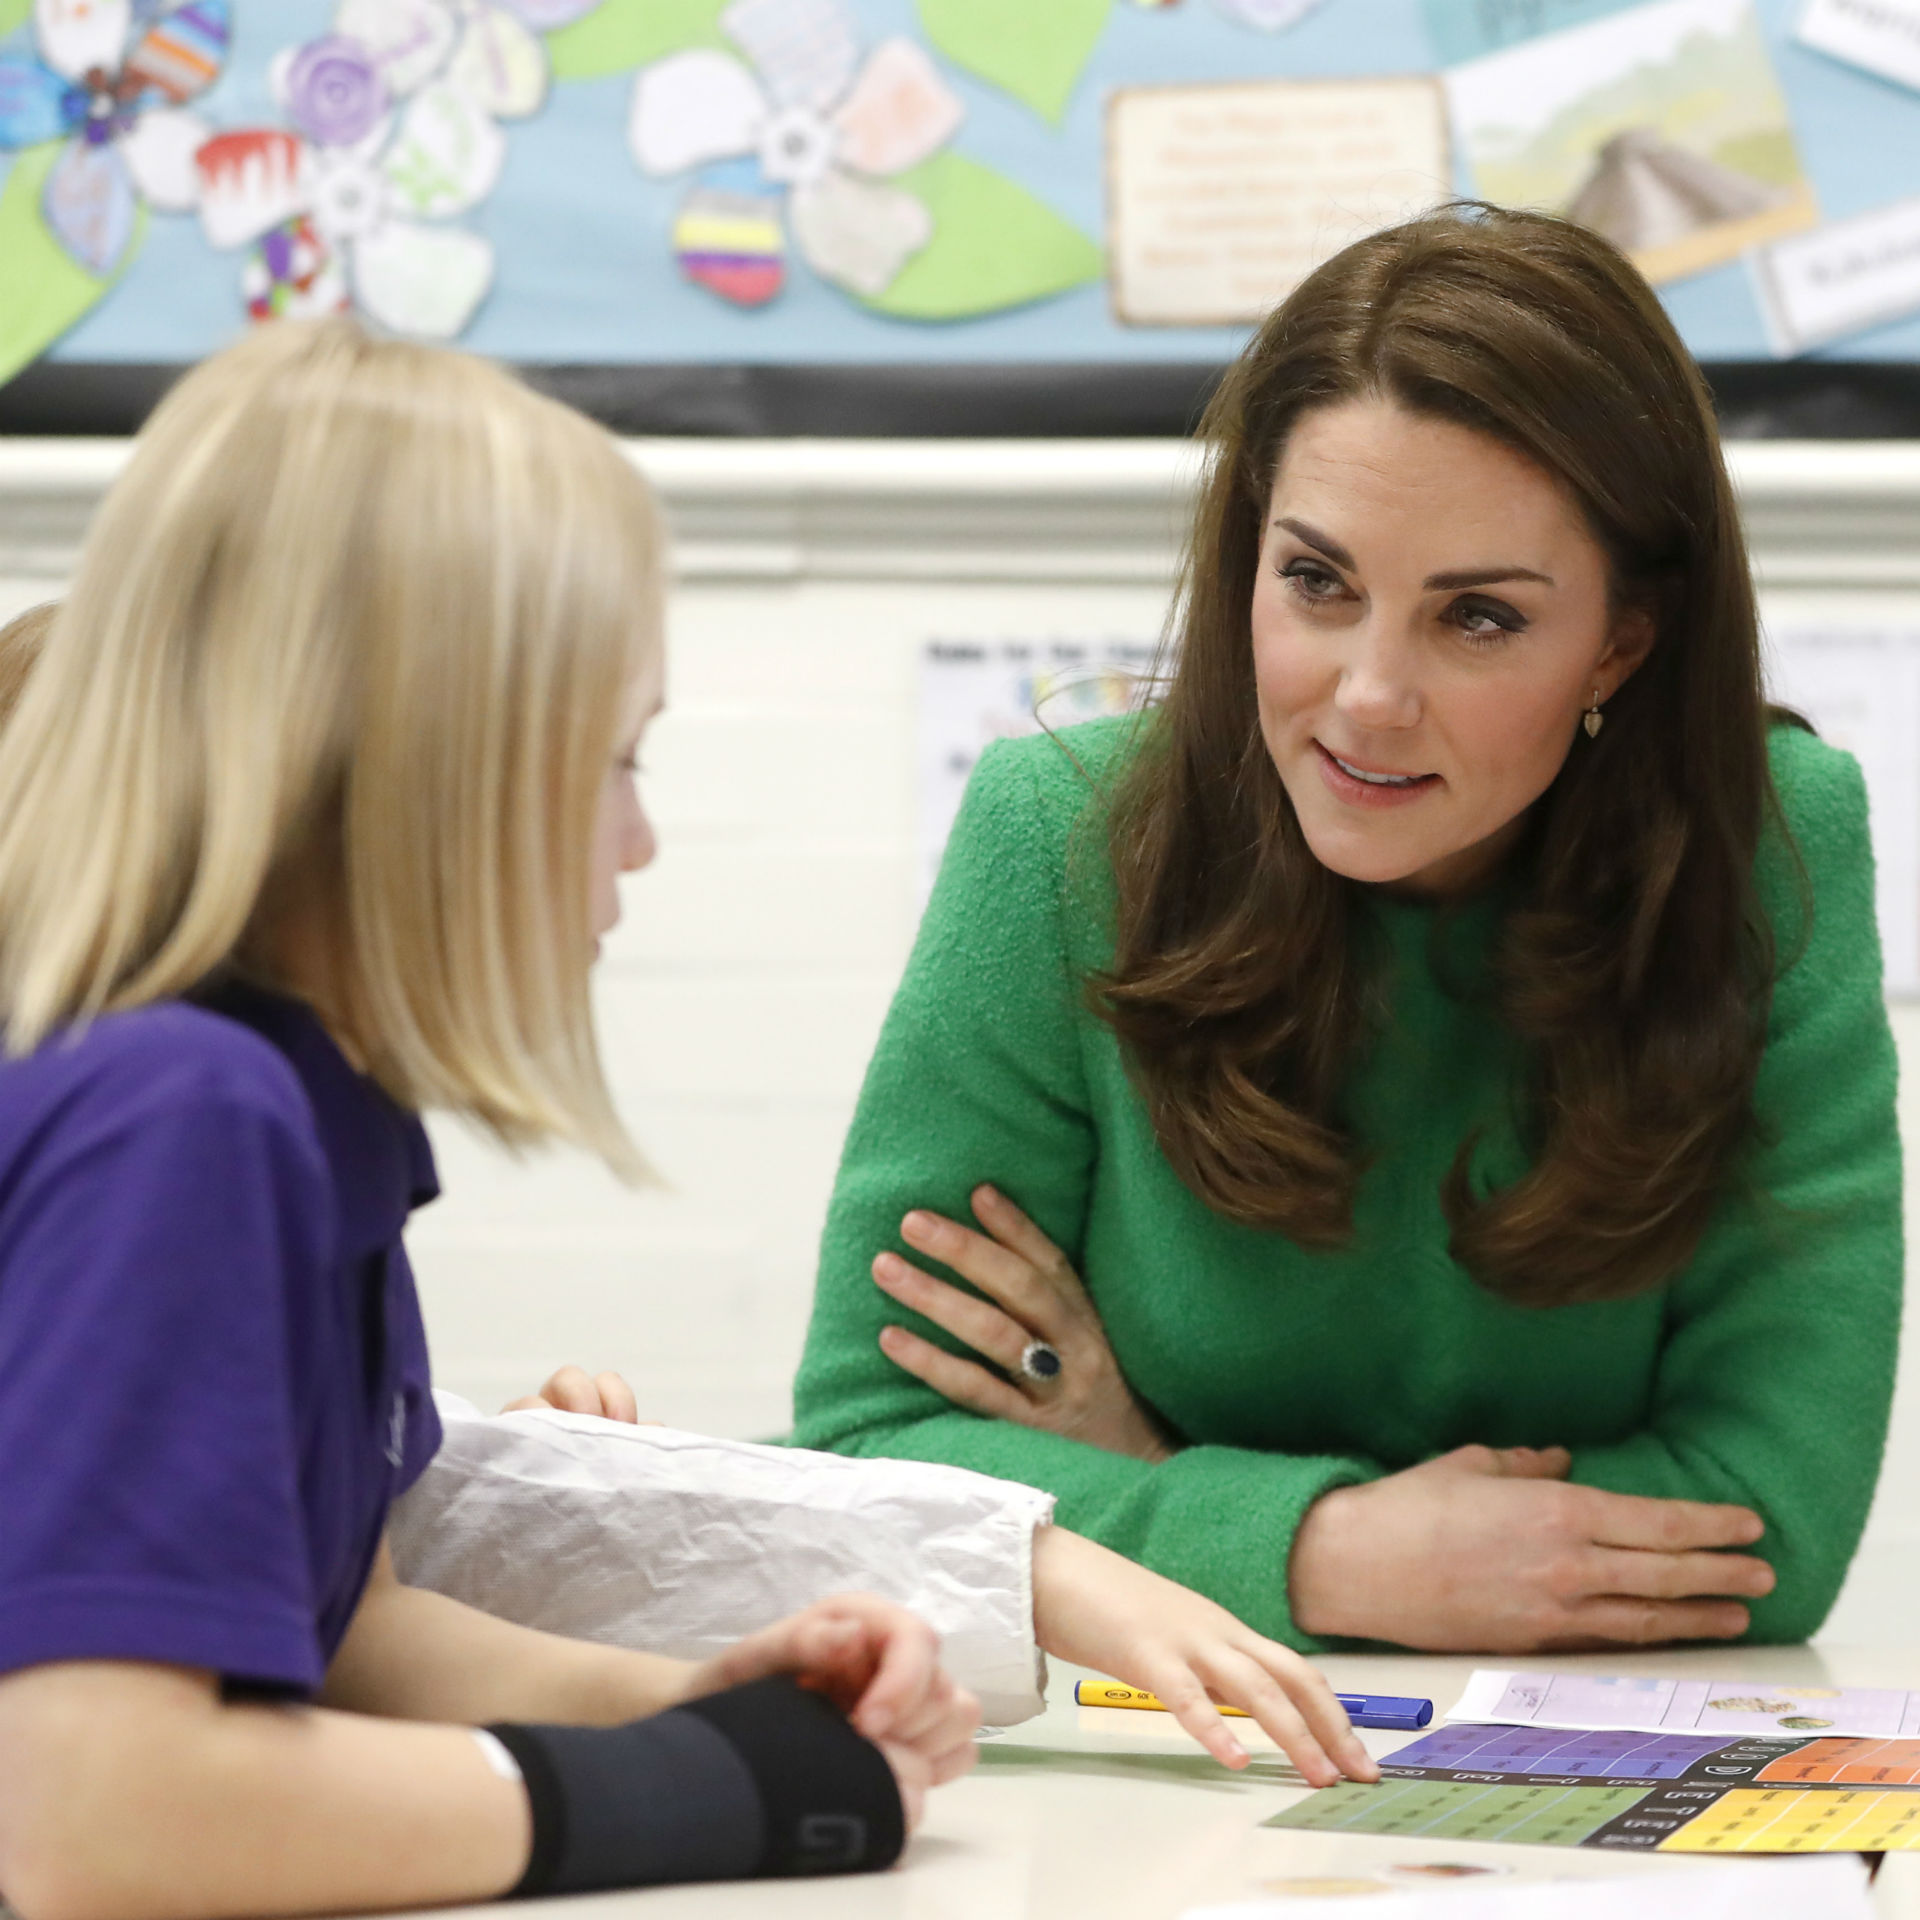 The Duchess of Cambridge in London